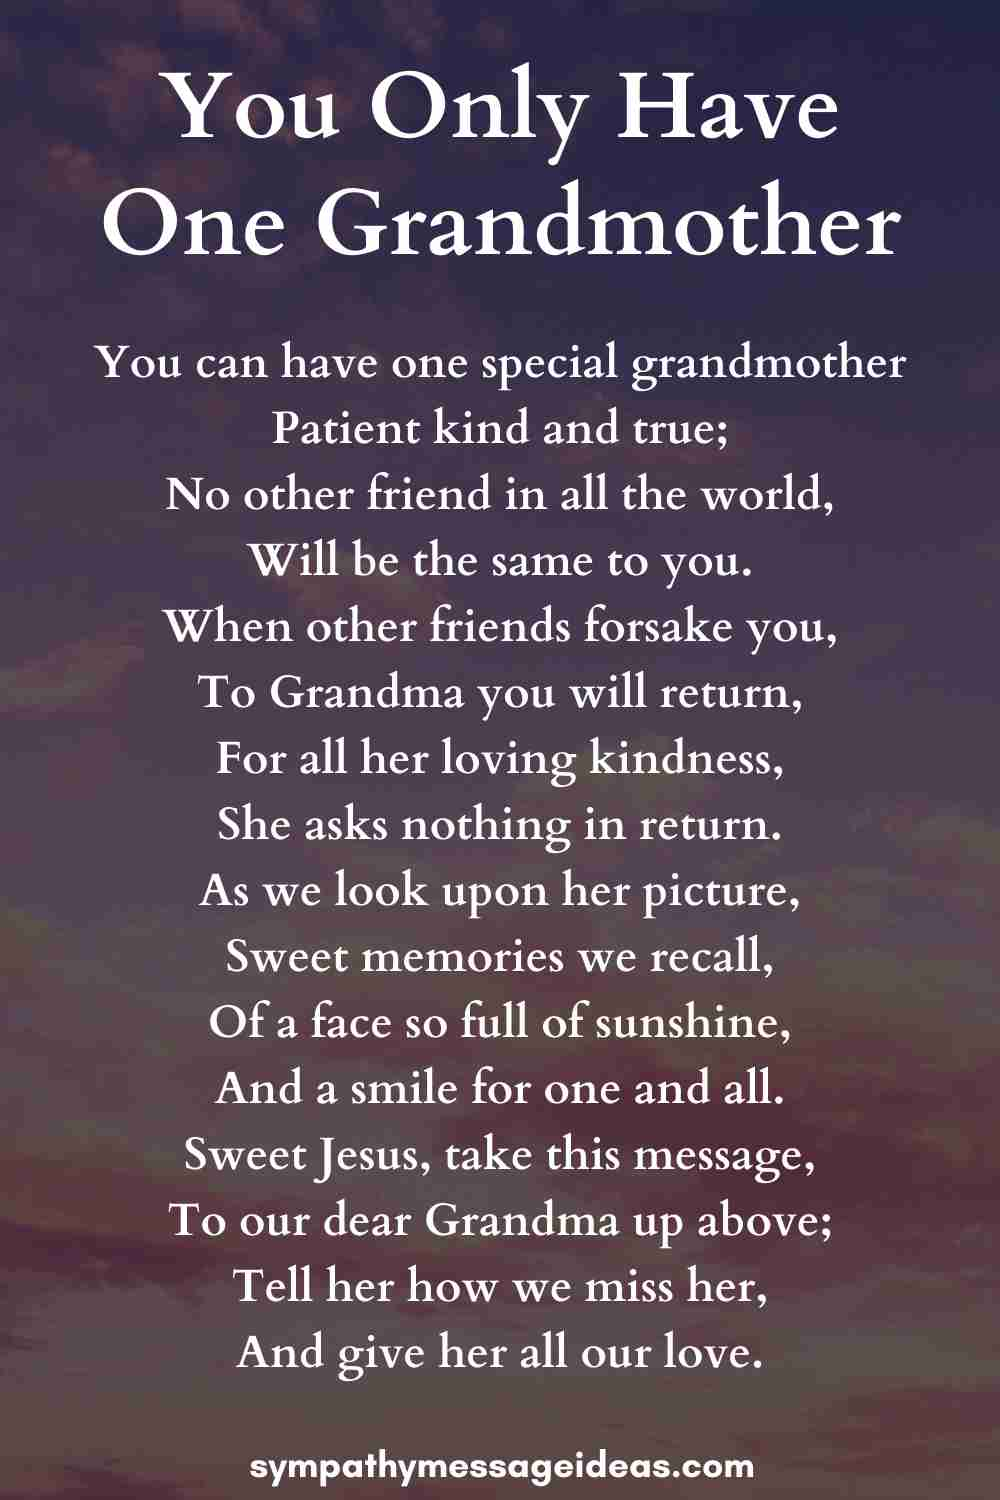 you only have one grandmother poem